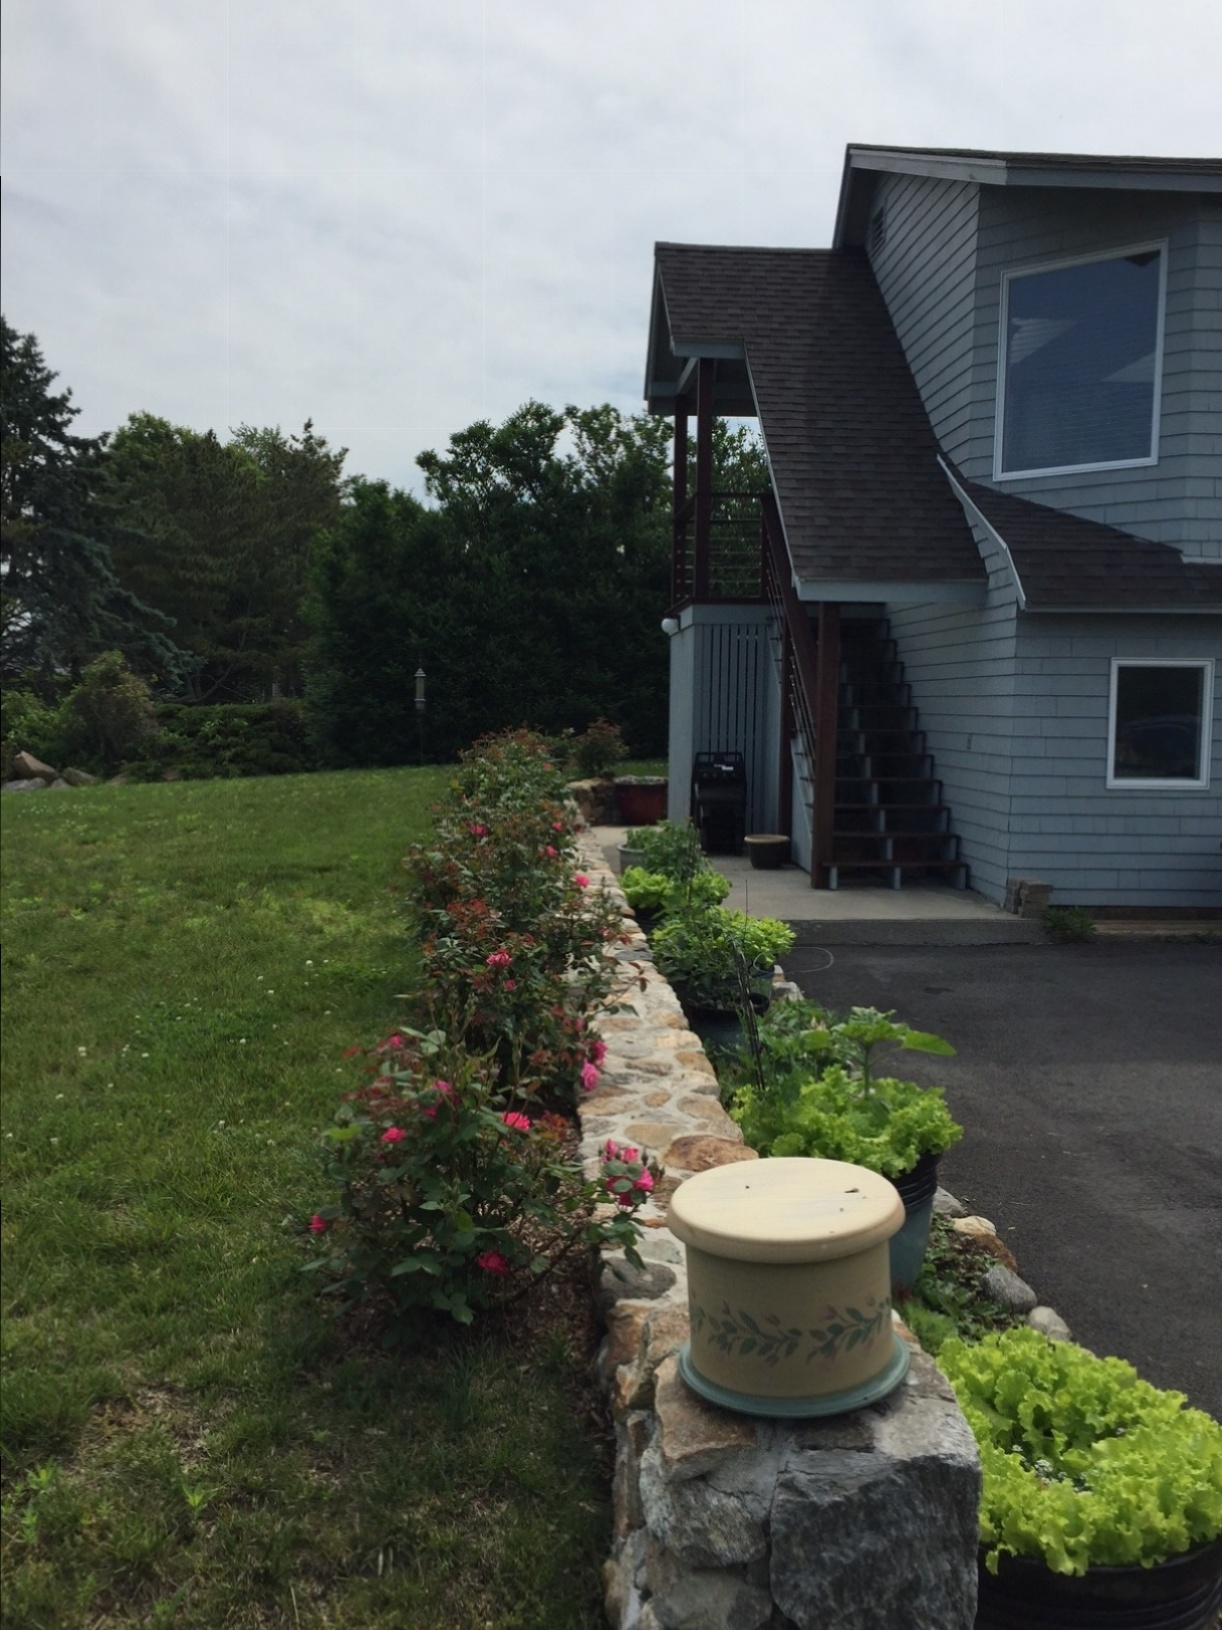 Additional photo for property listing at Sachems Head Association 149 Prospect Ave Guilford, Connecticut 06437 United States